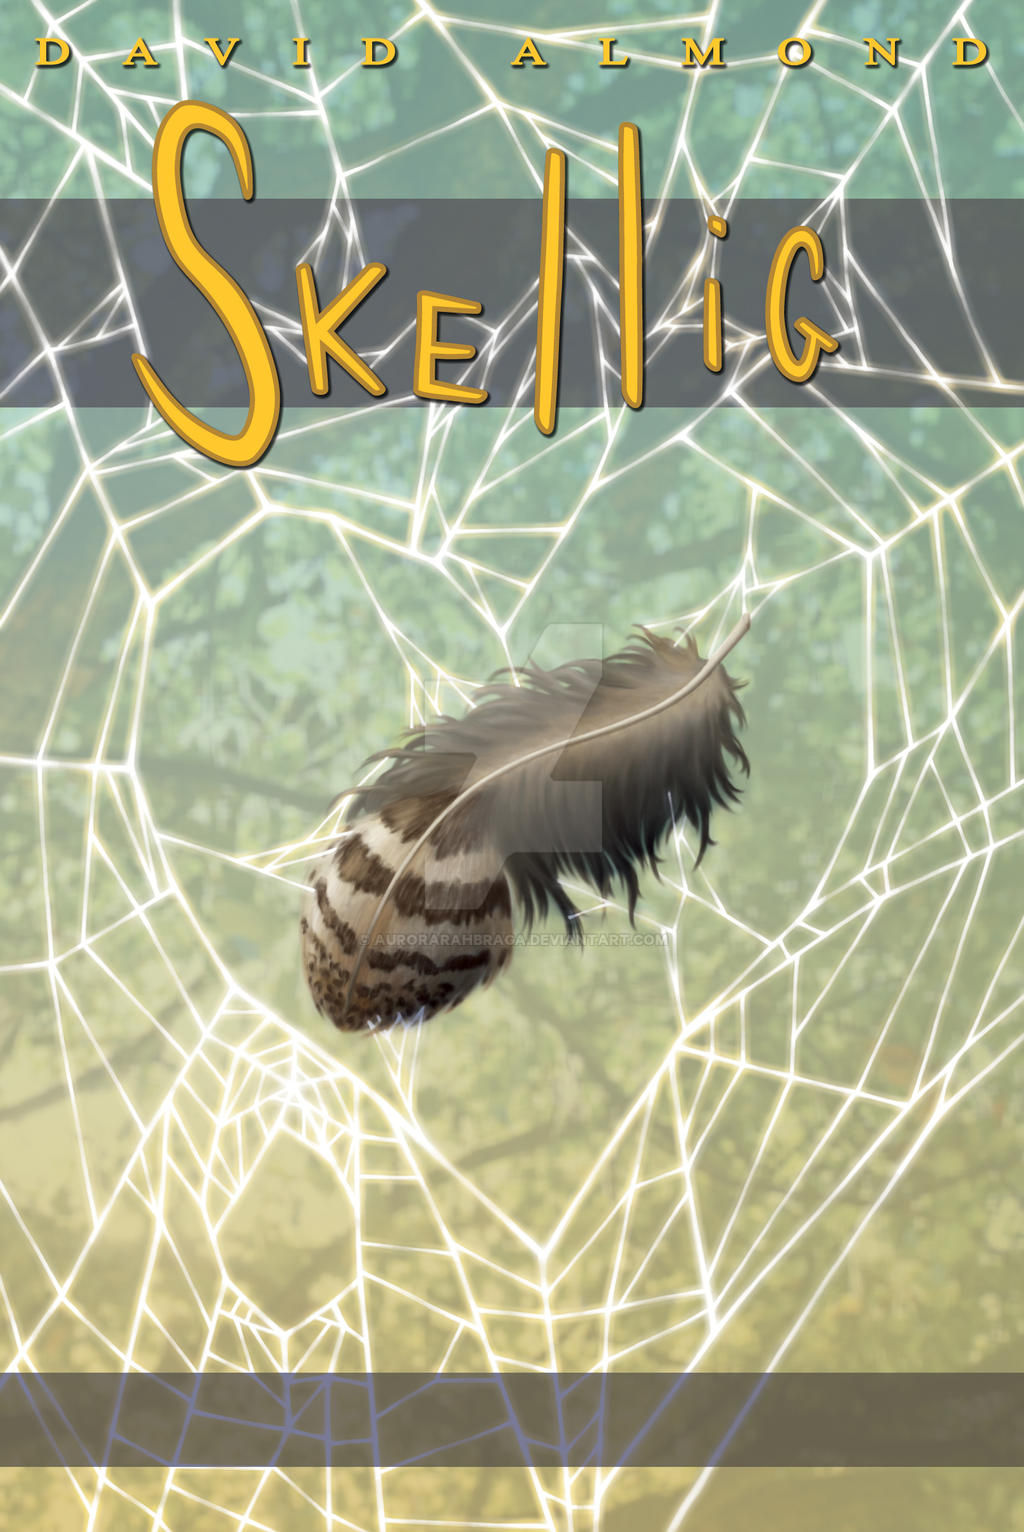 Book Cover Art Size ~ Skellig book cover by aurorarahbraga on deviantart